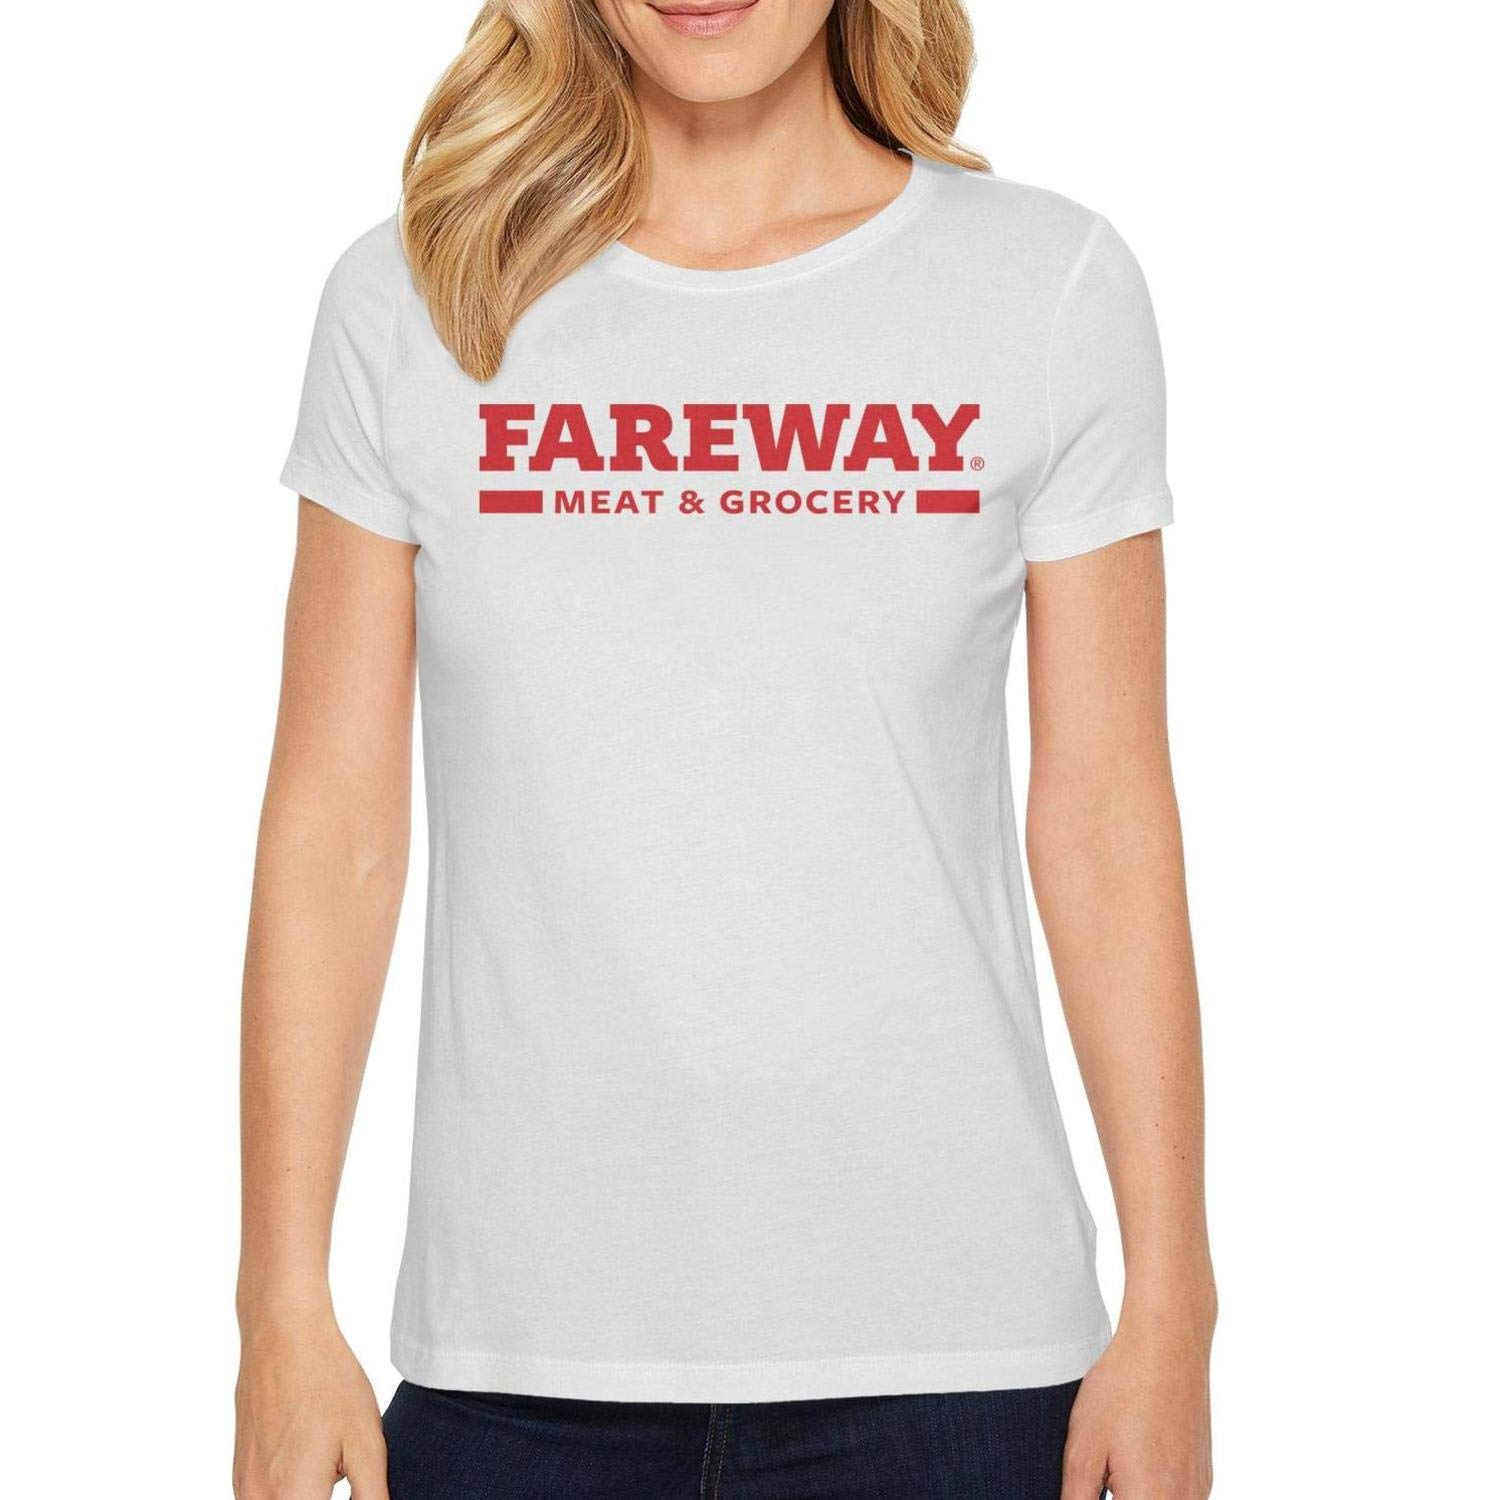 Fareway Launches New Logos Womens Short Sleeve T Shirts Cotton Custom Comfortable Shirt by XECVTYNJ